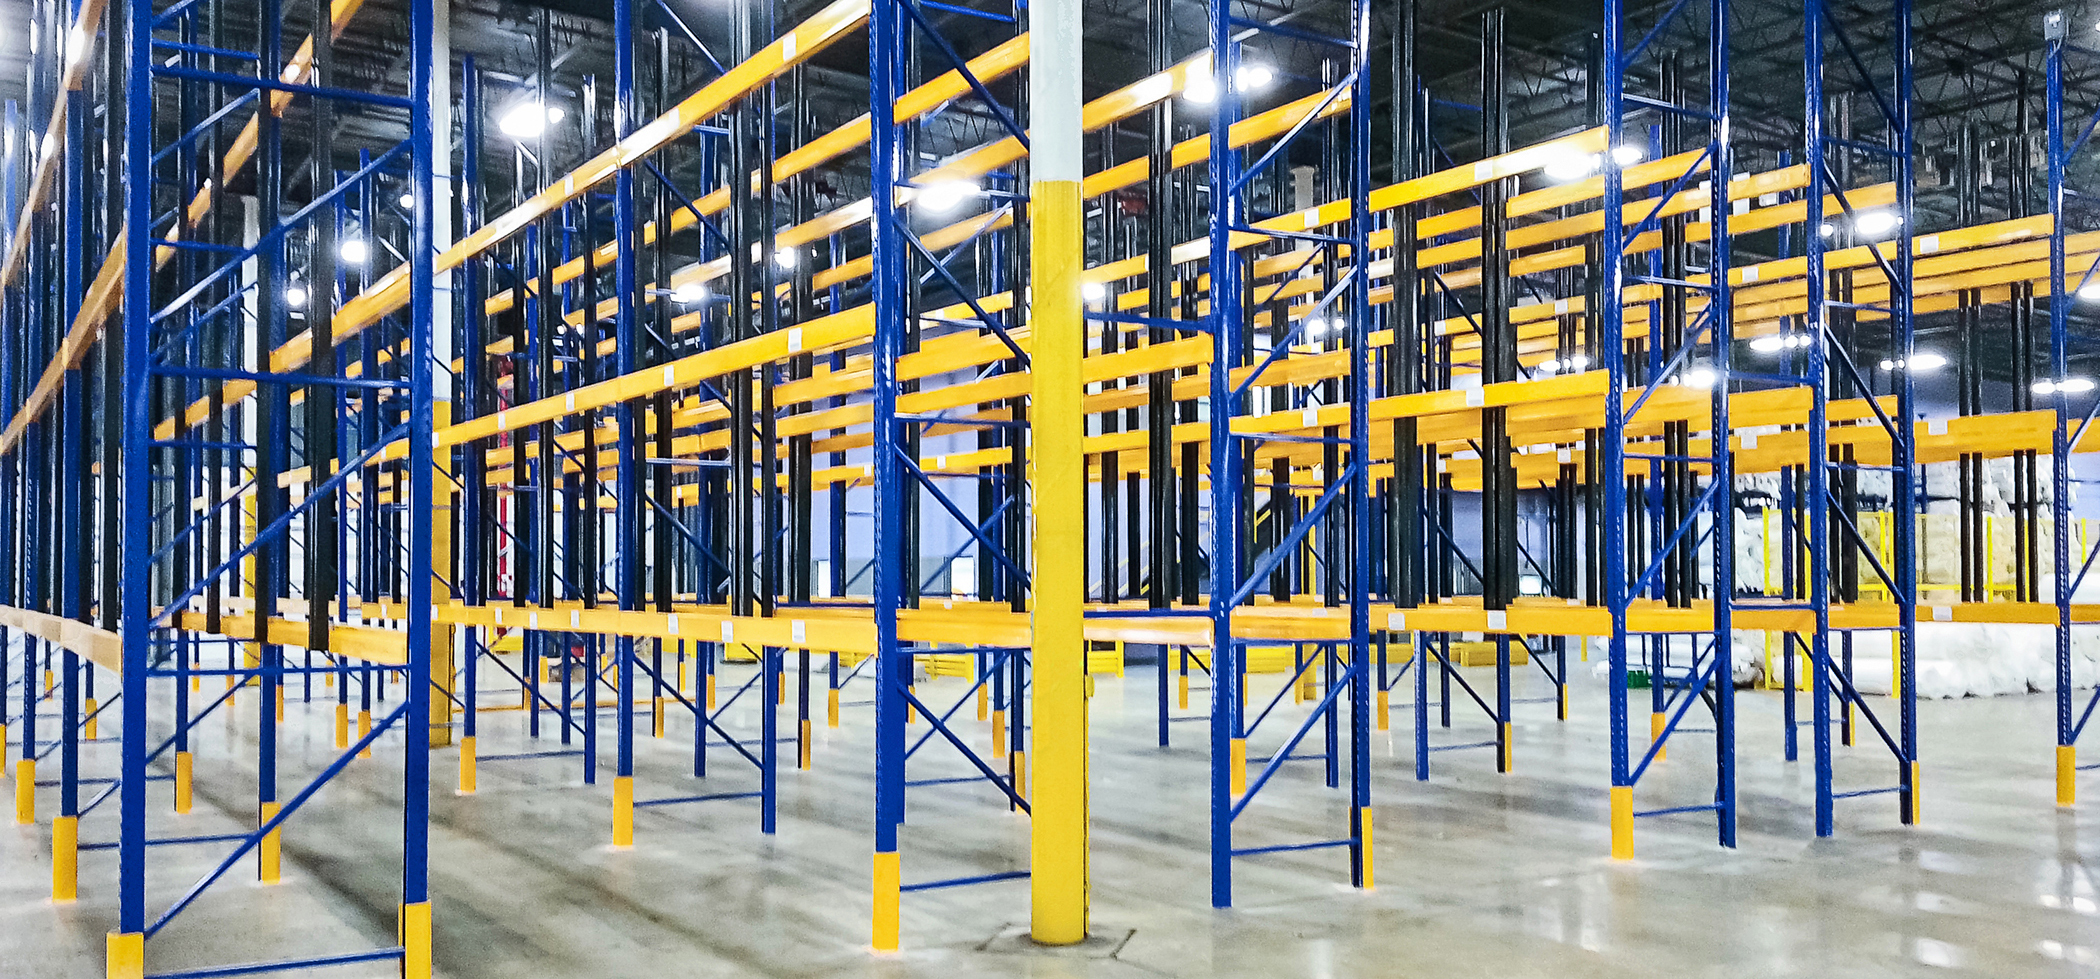 Custom colored galvanized pallet racks in a storage facility